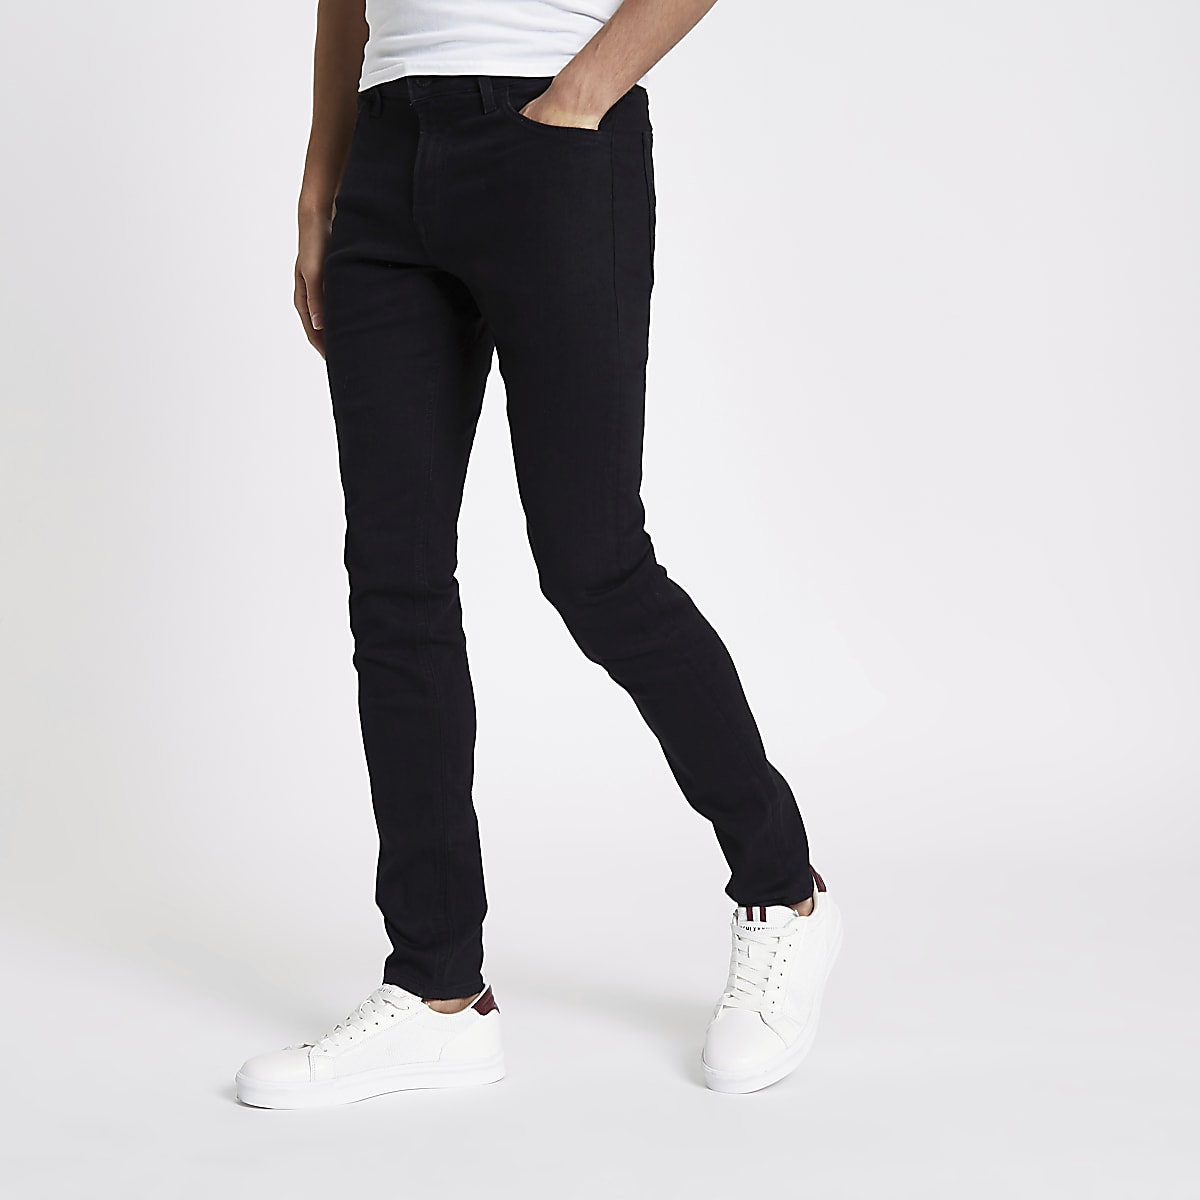 Lee black skinny fit Malone jeans